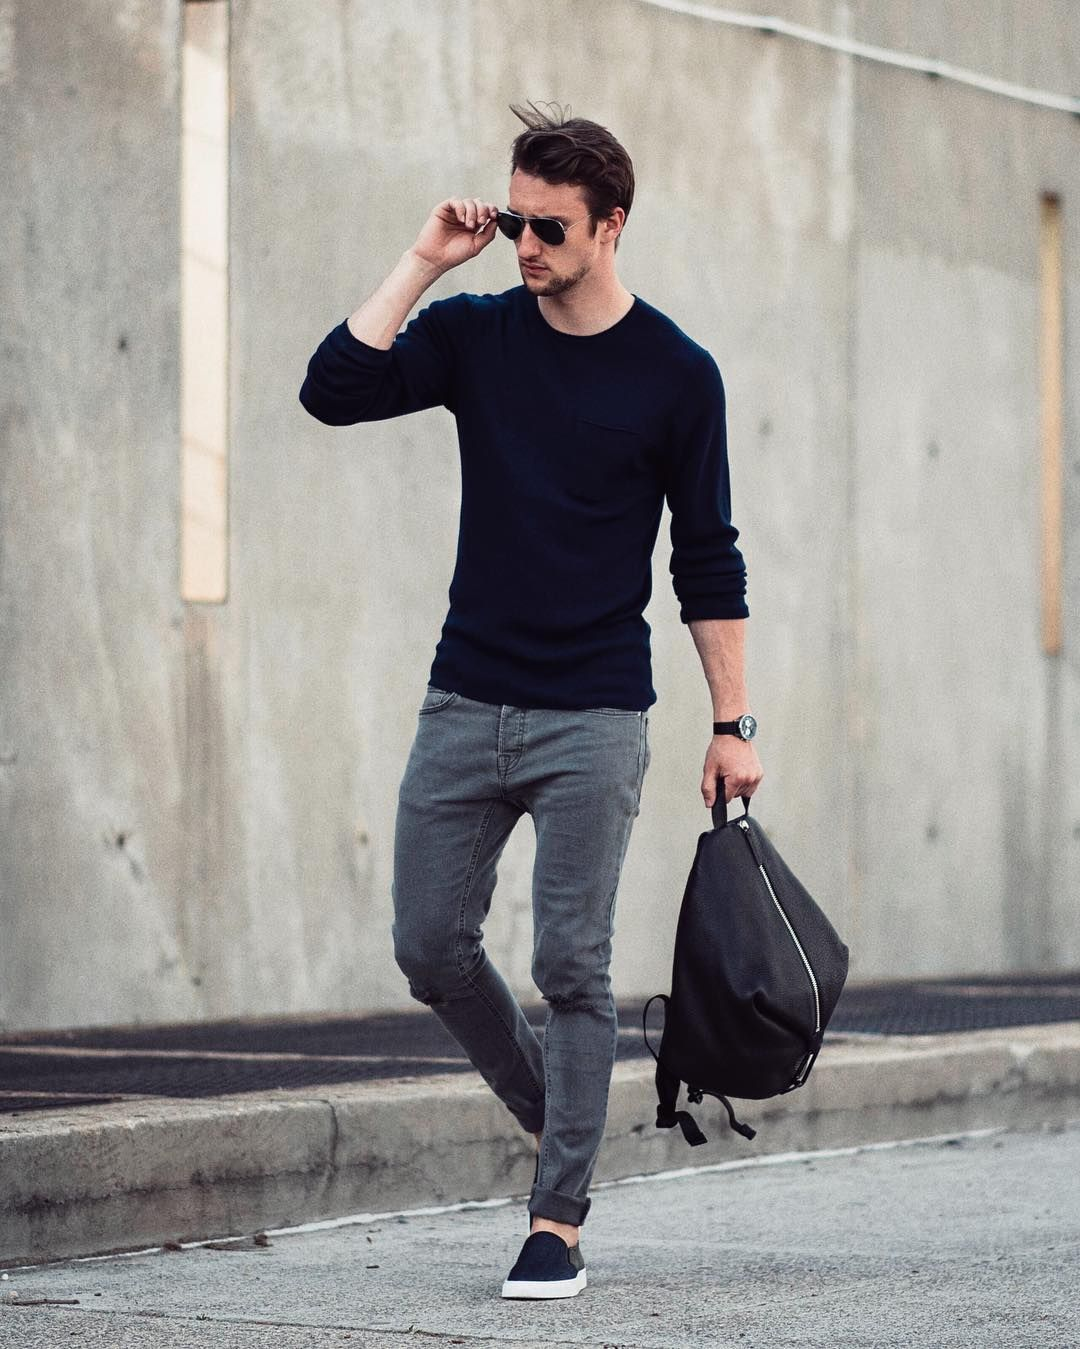 5 Outfits That Will Make You Look Way Cooler Pinterest